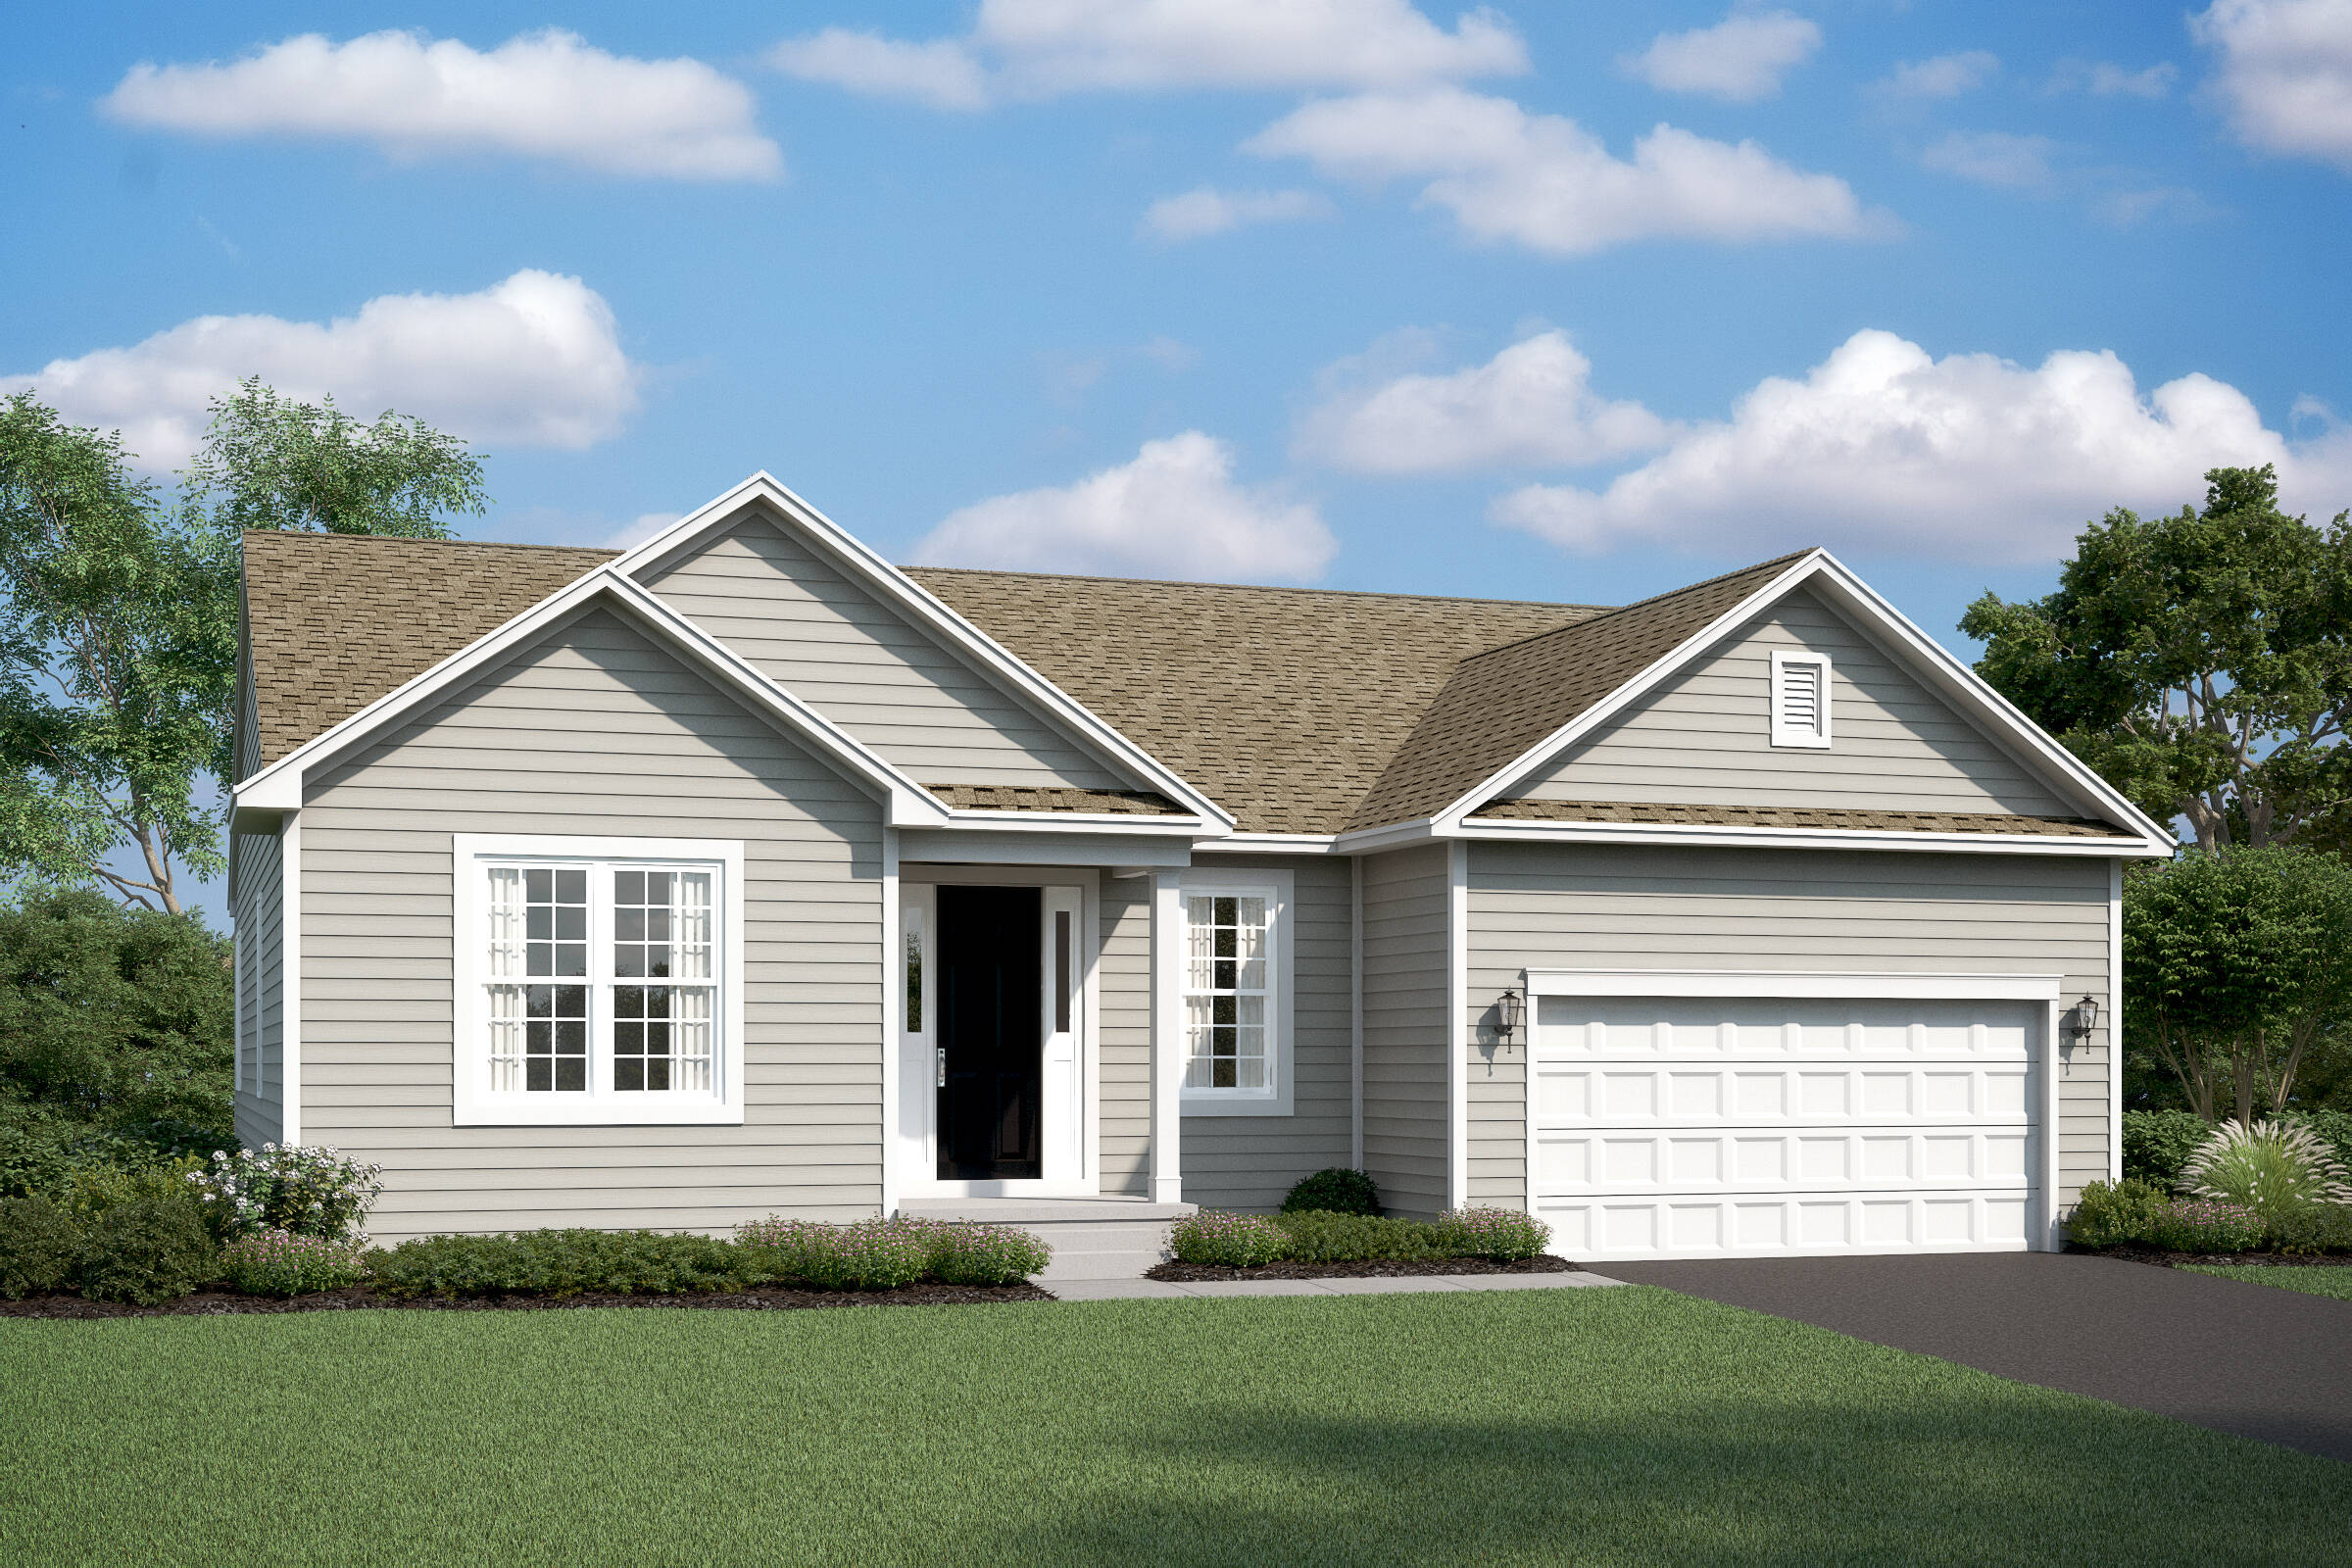 st michael c new homes at red mill pond in delaware